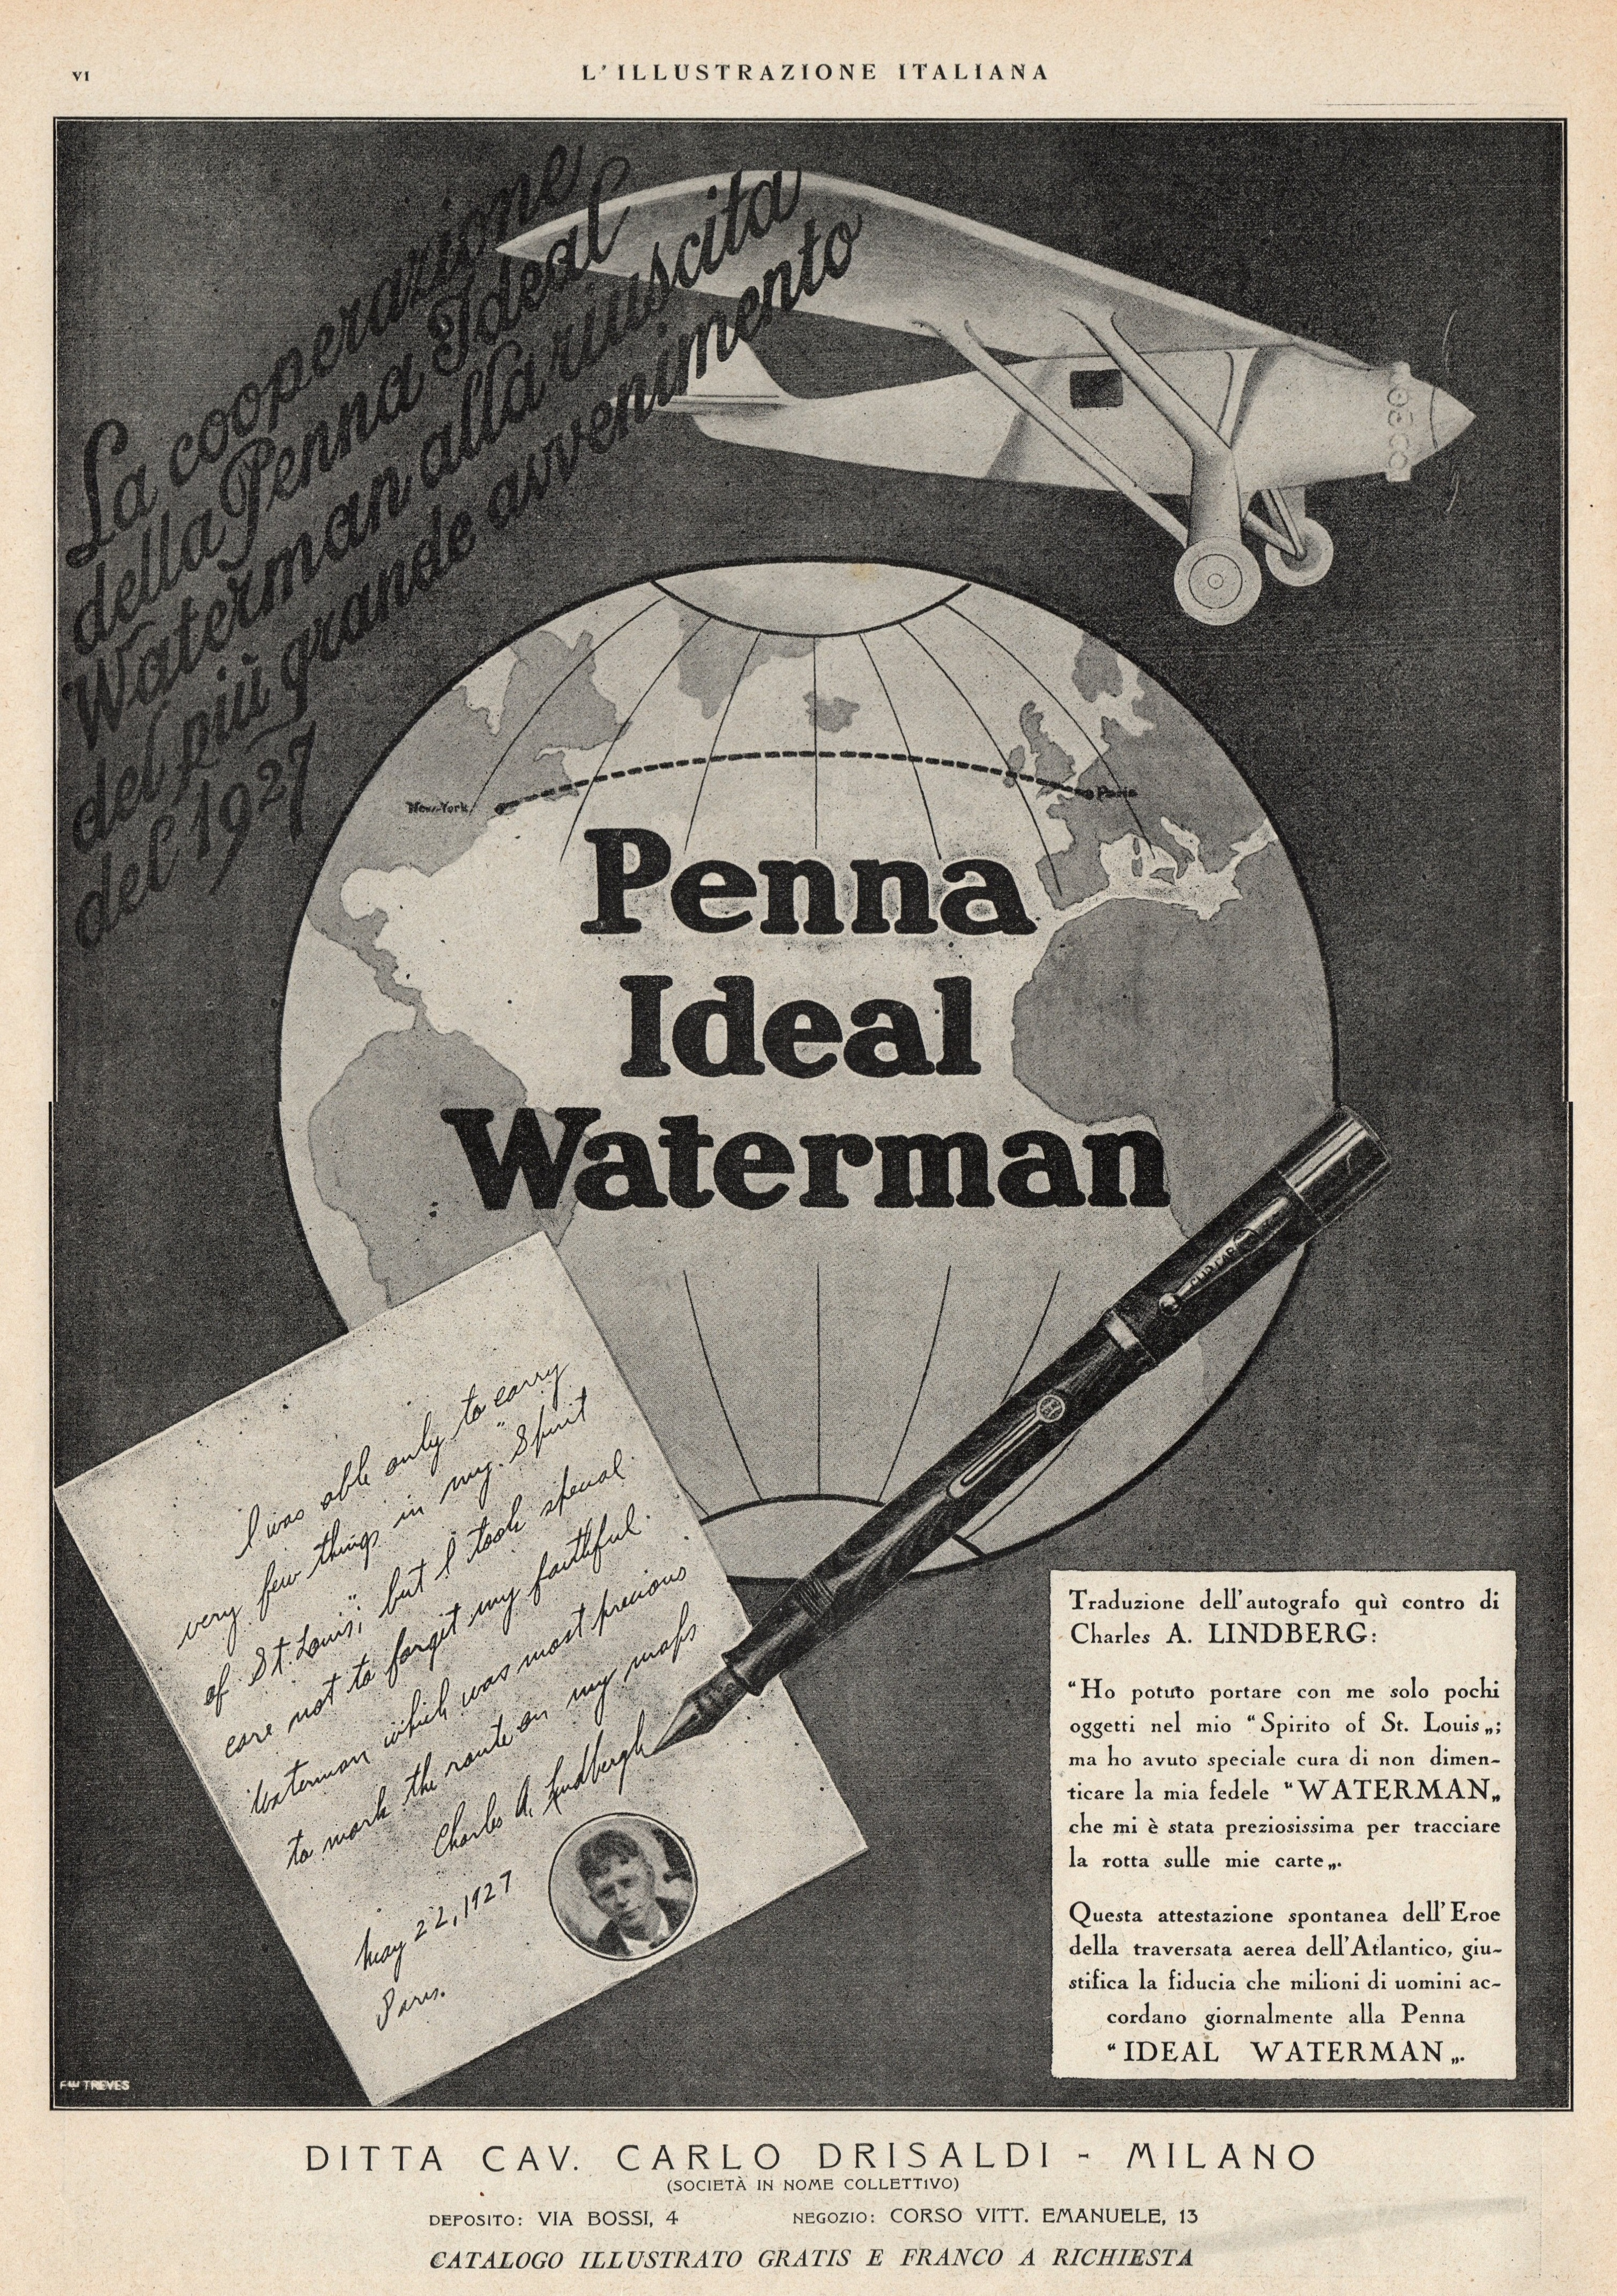 WATERMAN - 5x. 1927-12-25 -L'Illustrazione Italiana Anno LIV- n.52, pagVI.jpg